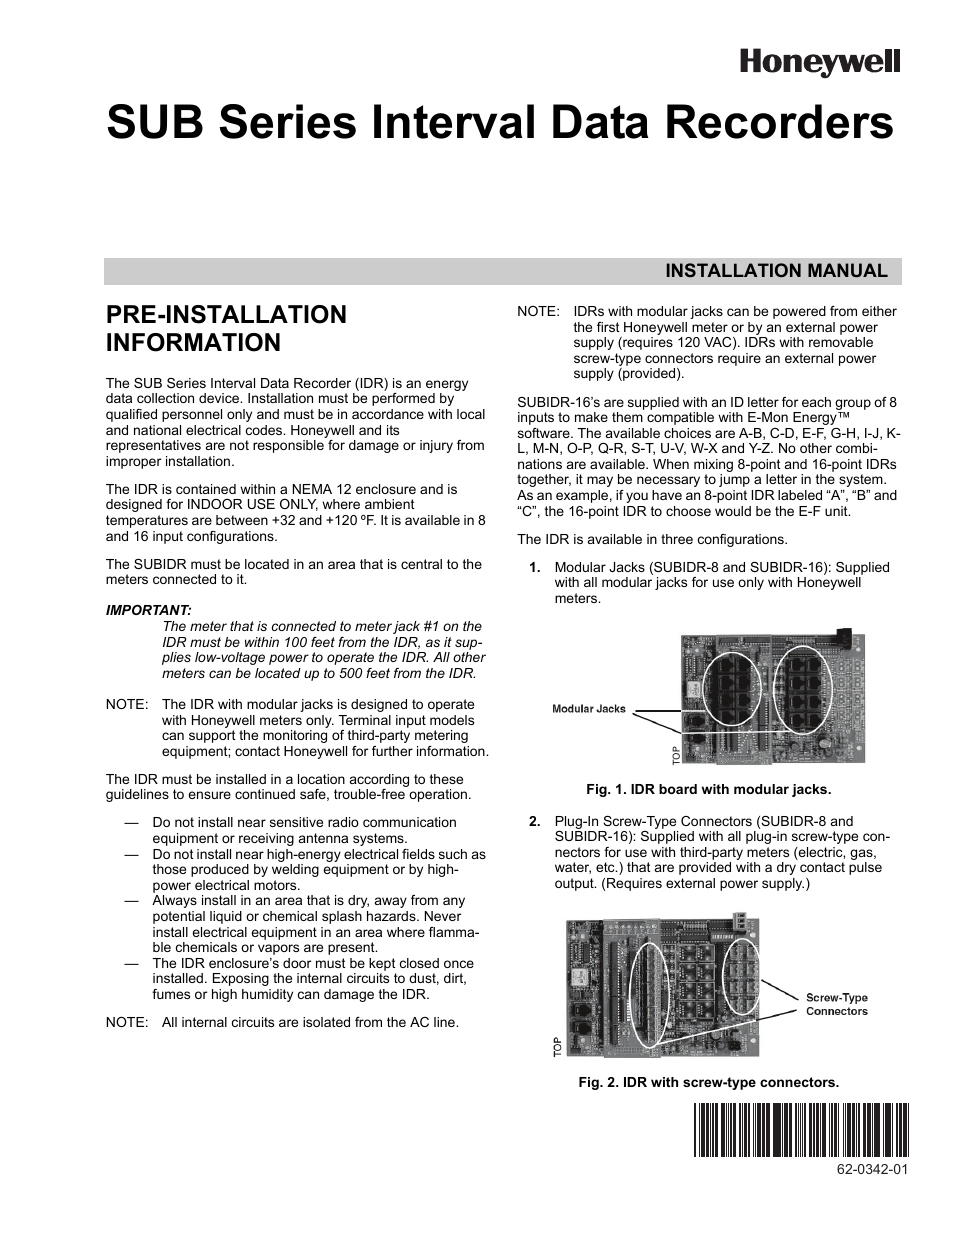 Honeywell Sub Series Interval Data Recorders 62 0342 01 User Manual Emon Meter Wiring Diagram Get Free Image About 16 Pages